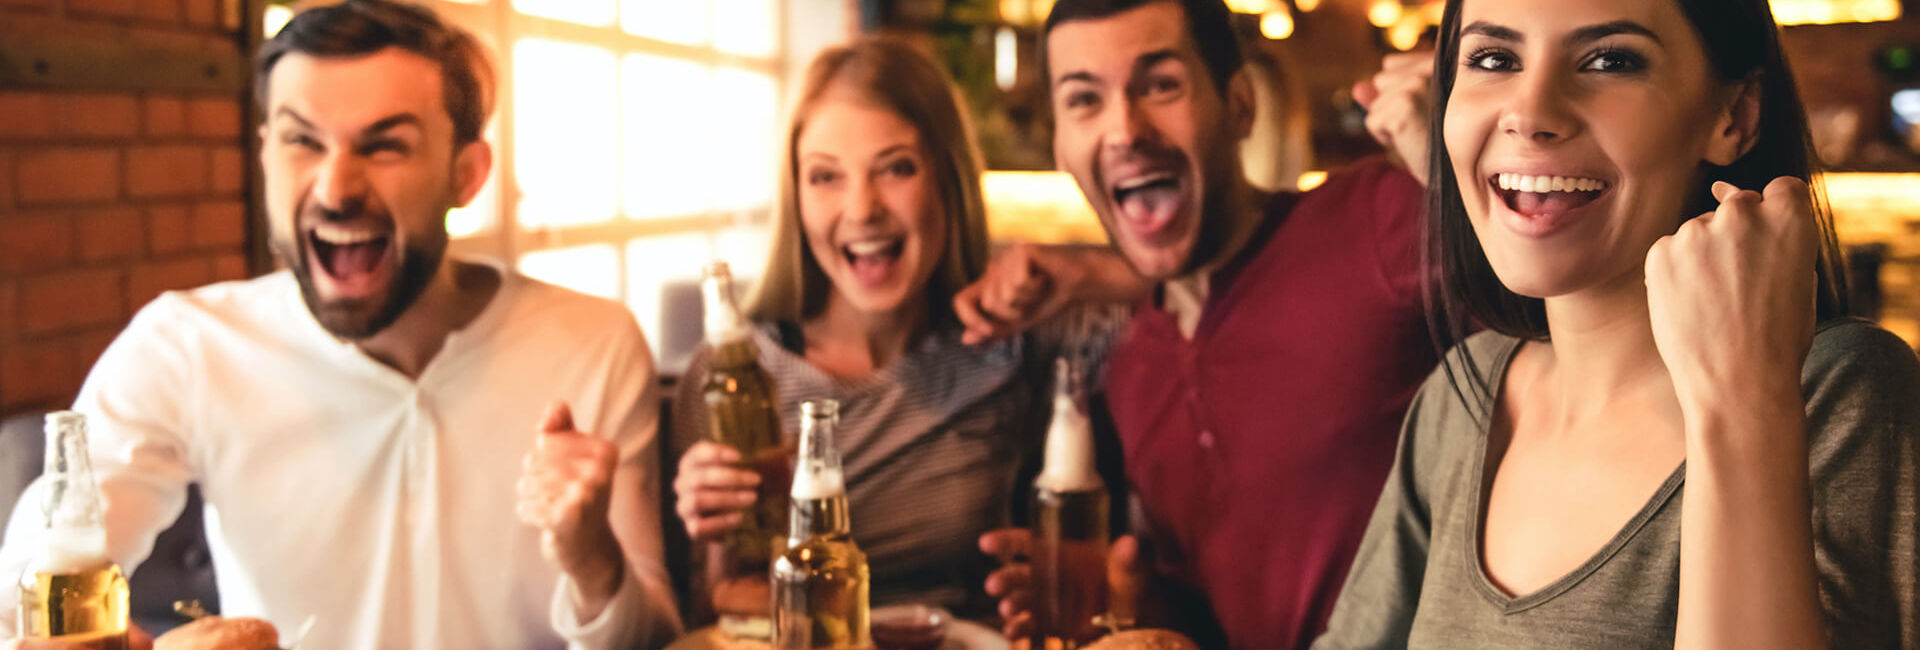 Two couples drinking beer and cheering - Pub Quiz Trivia - Gasterij 't Karrewiel